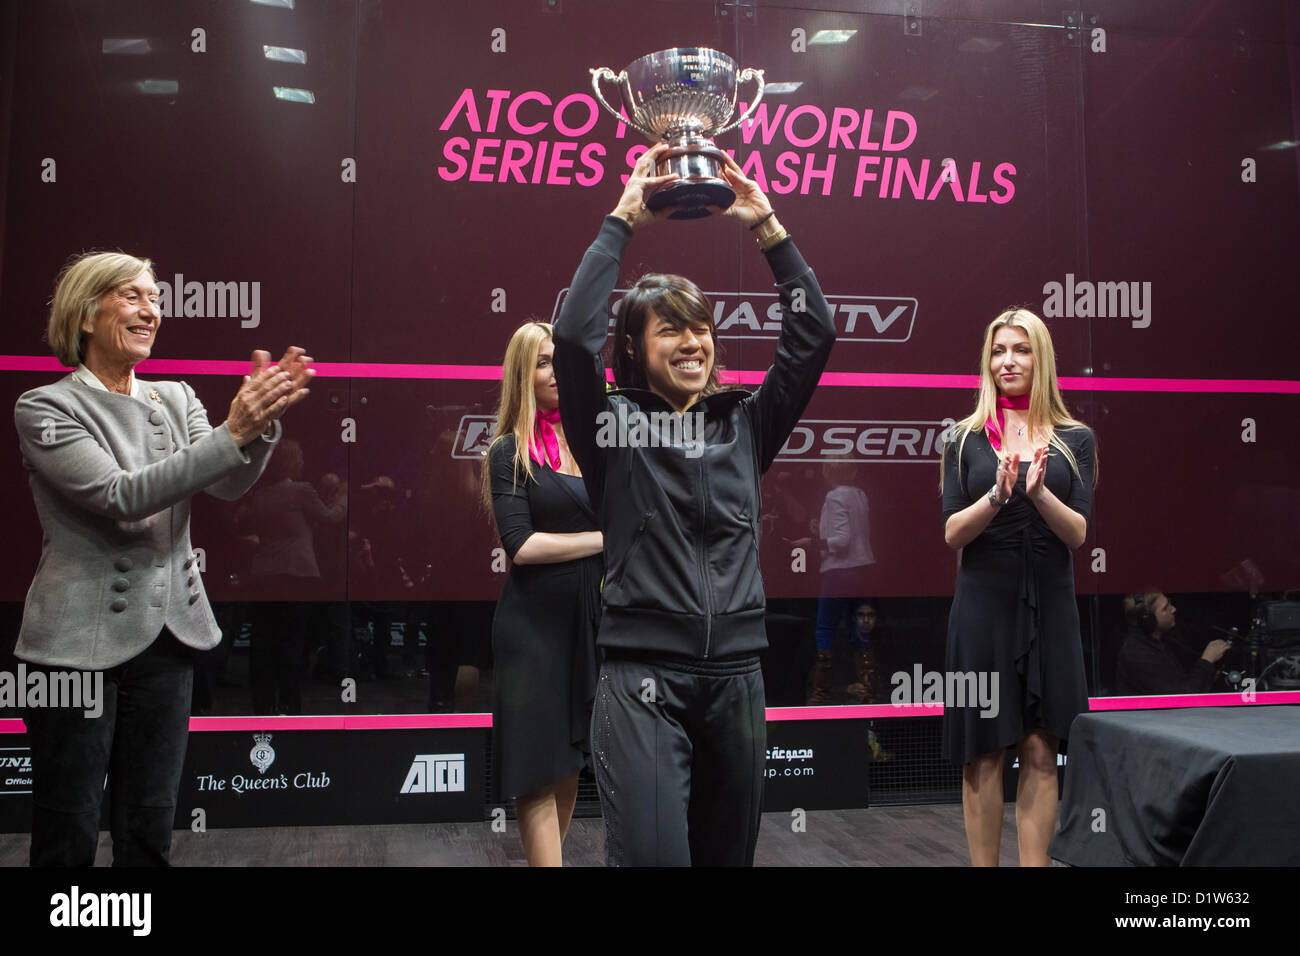 06.01.2013 London, England. World number 1 and reigning World Series champion Nicol David (Malaysia) lifts the trophy - Stock Image